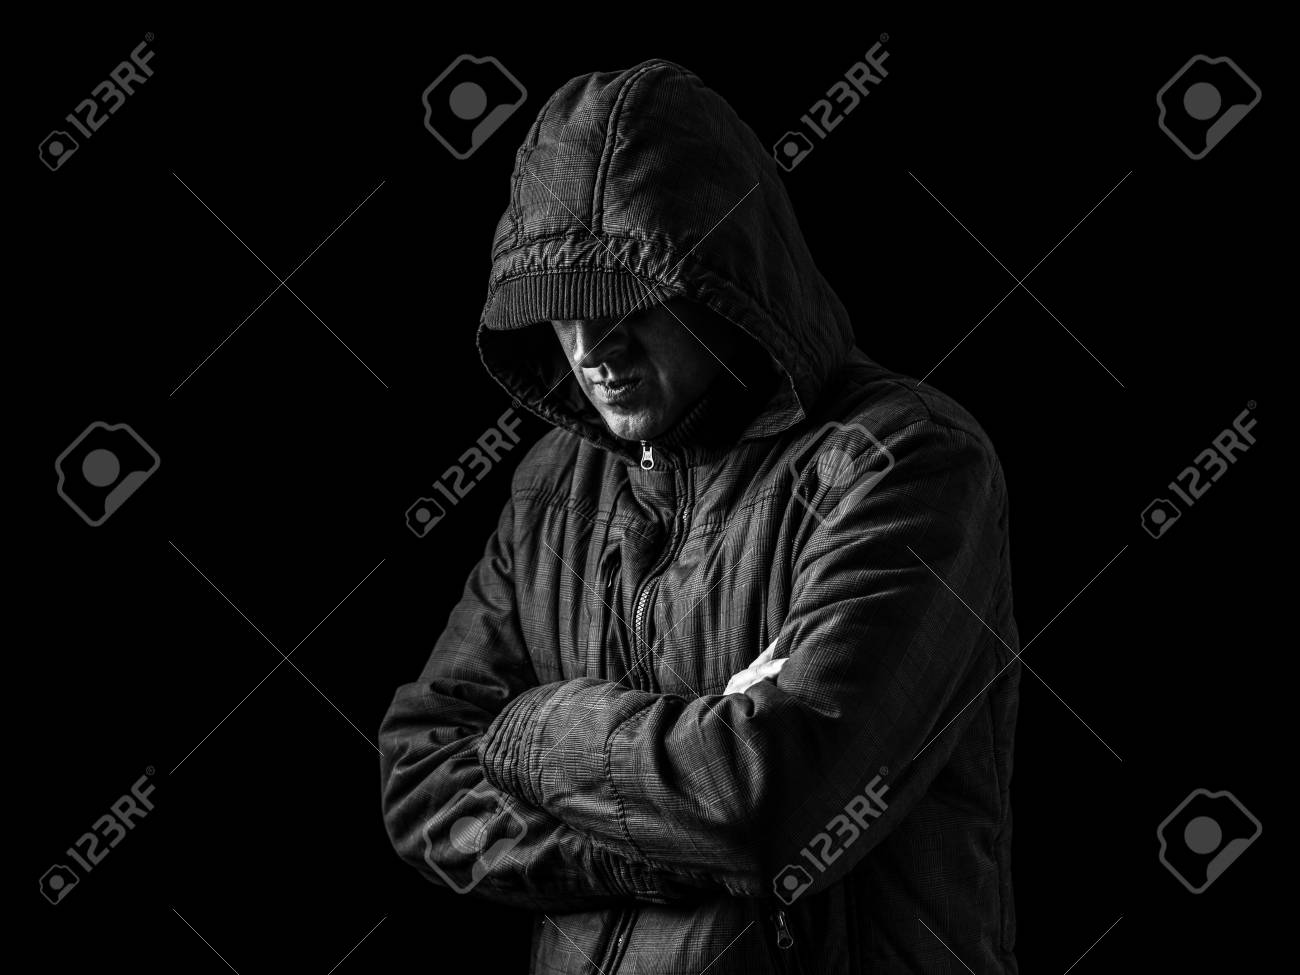 Lonely And Depressed >> Lonely Depressed And Fragile Man Hiding Face Arms Crossed And